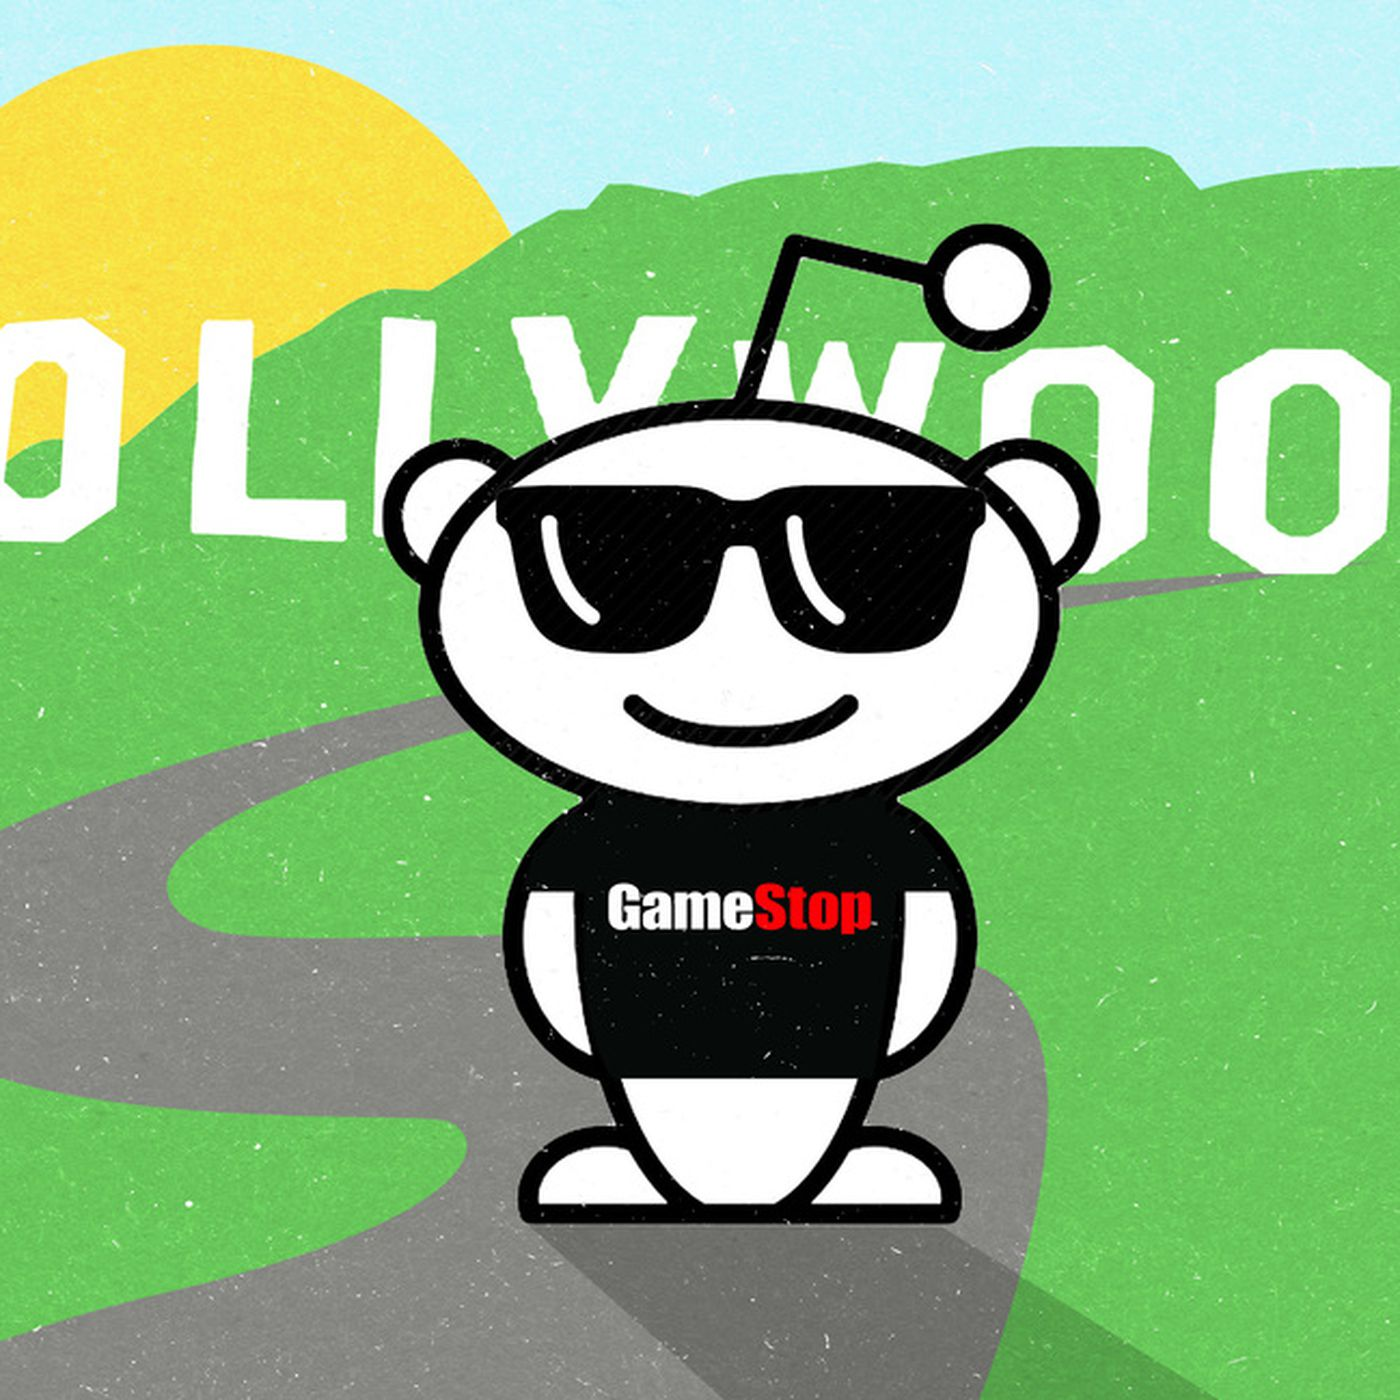 theringer.com - Ben Lindbergh - How GameStop Became the Next Hollywood Bubble